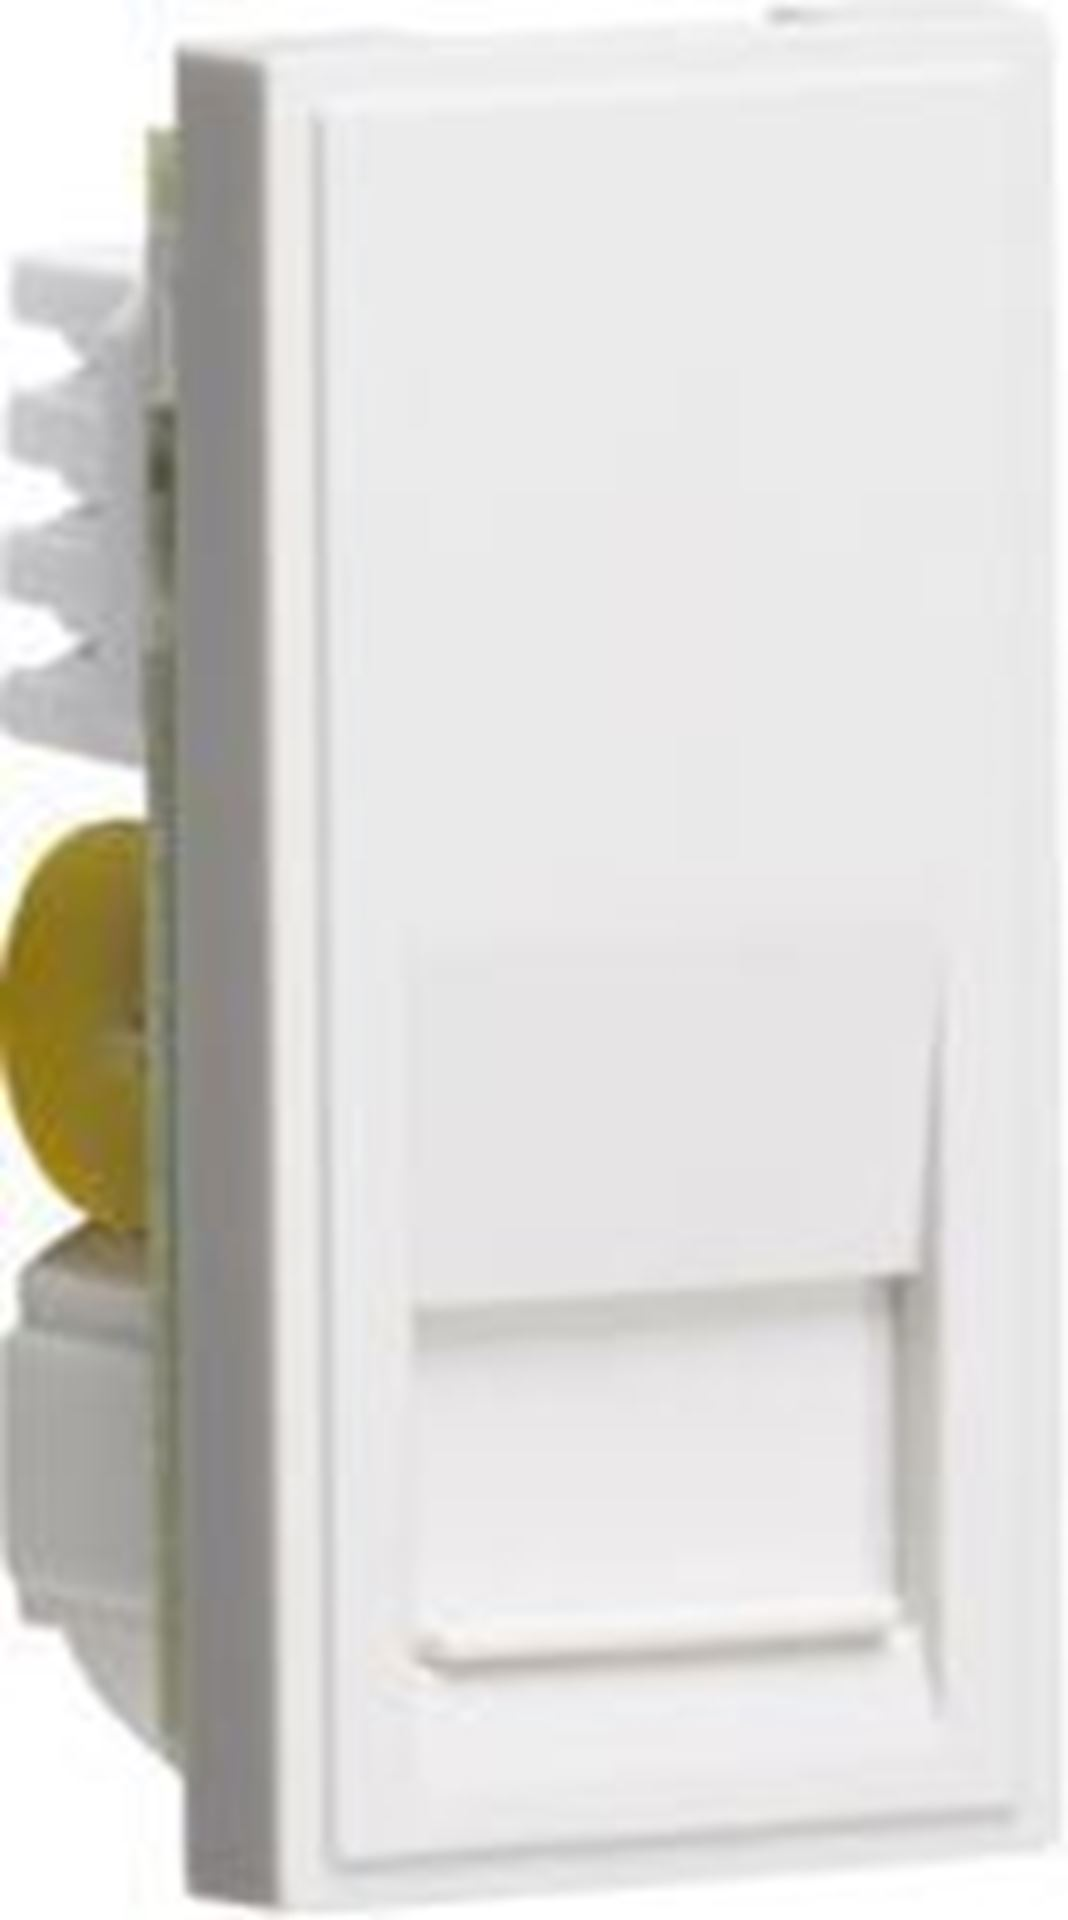 Telephone Secondary Outlet Module 25 x 50mm (IDC) - White NETBTSWH